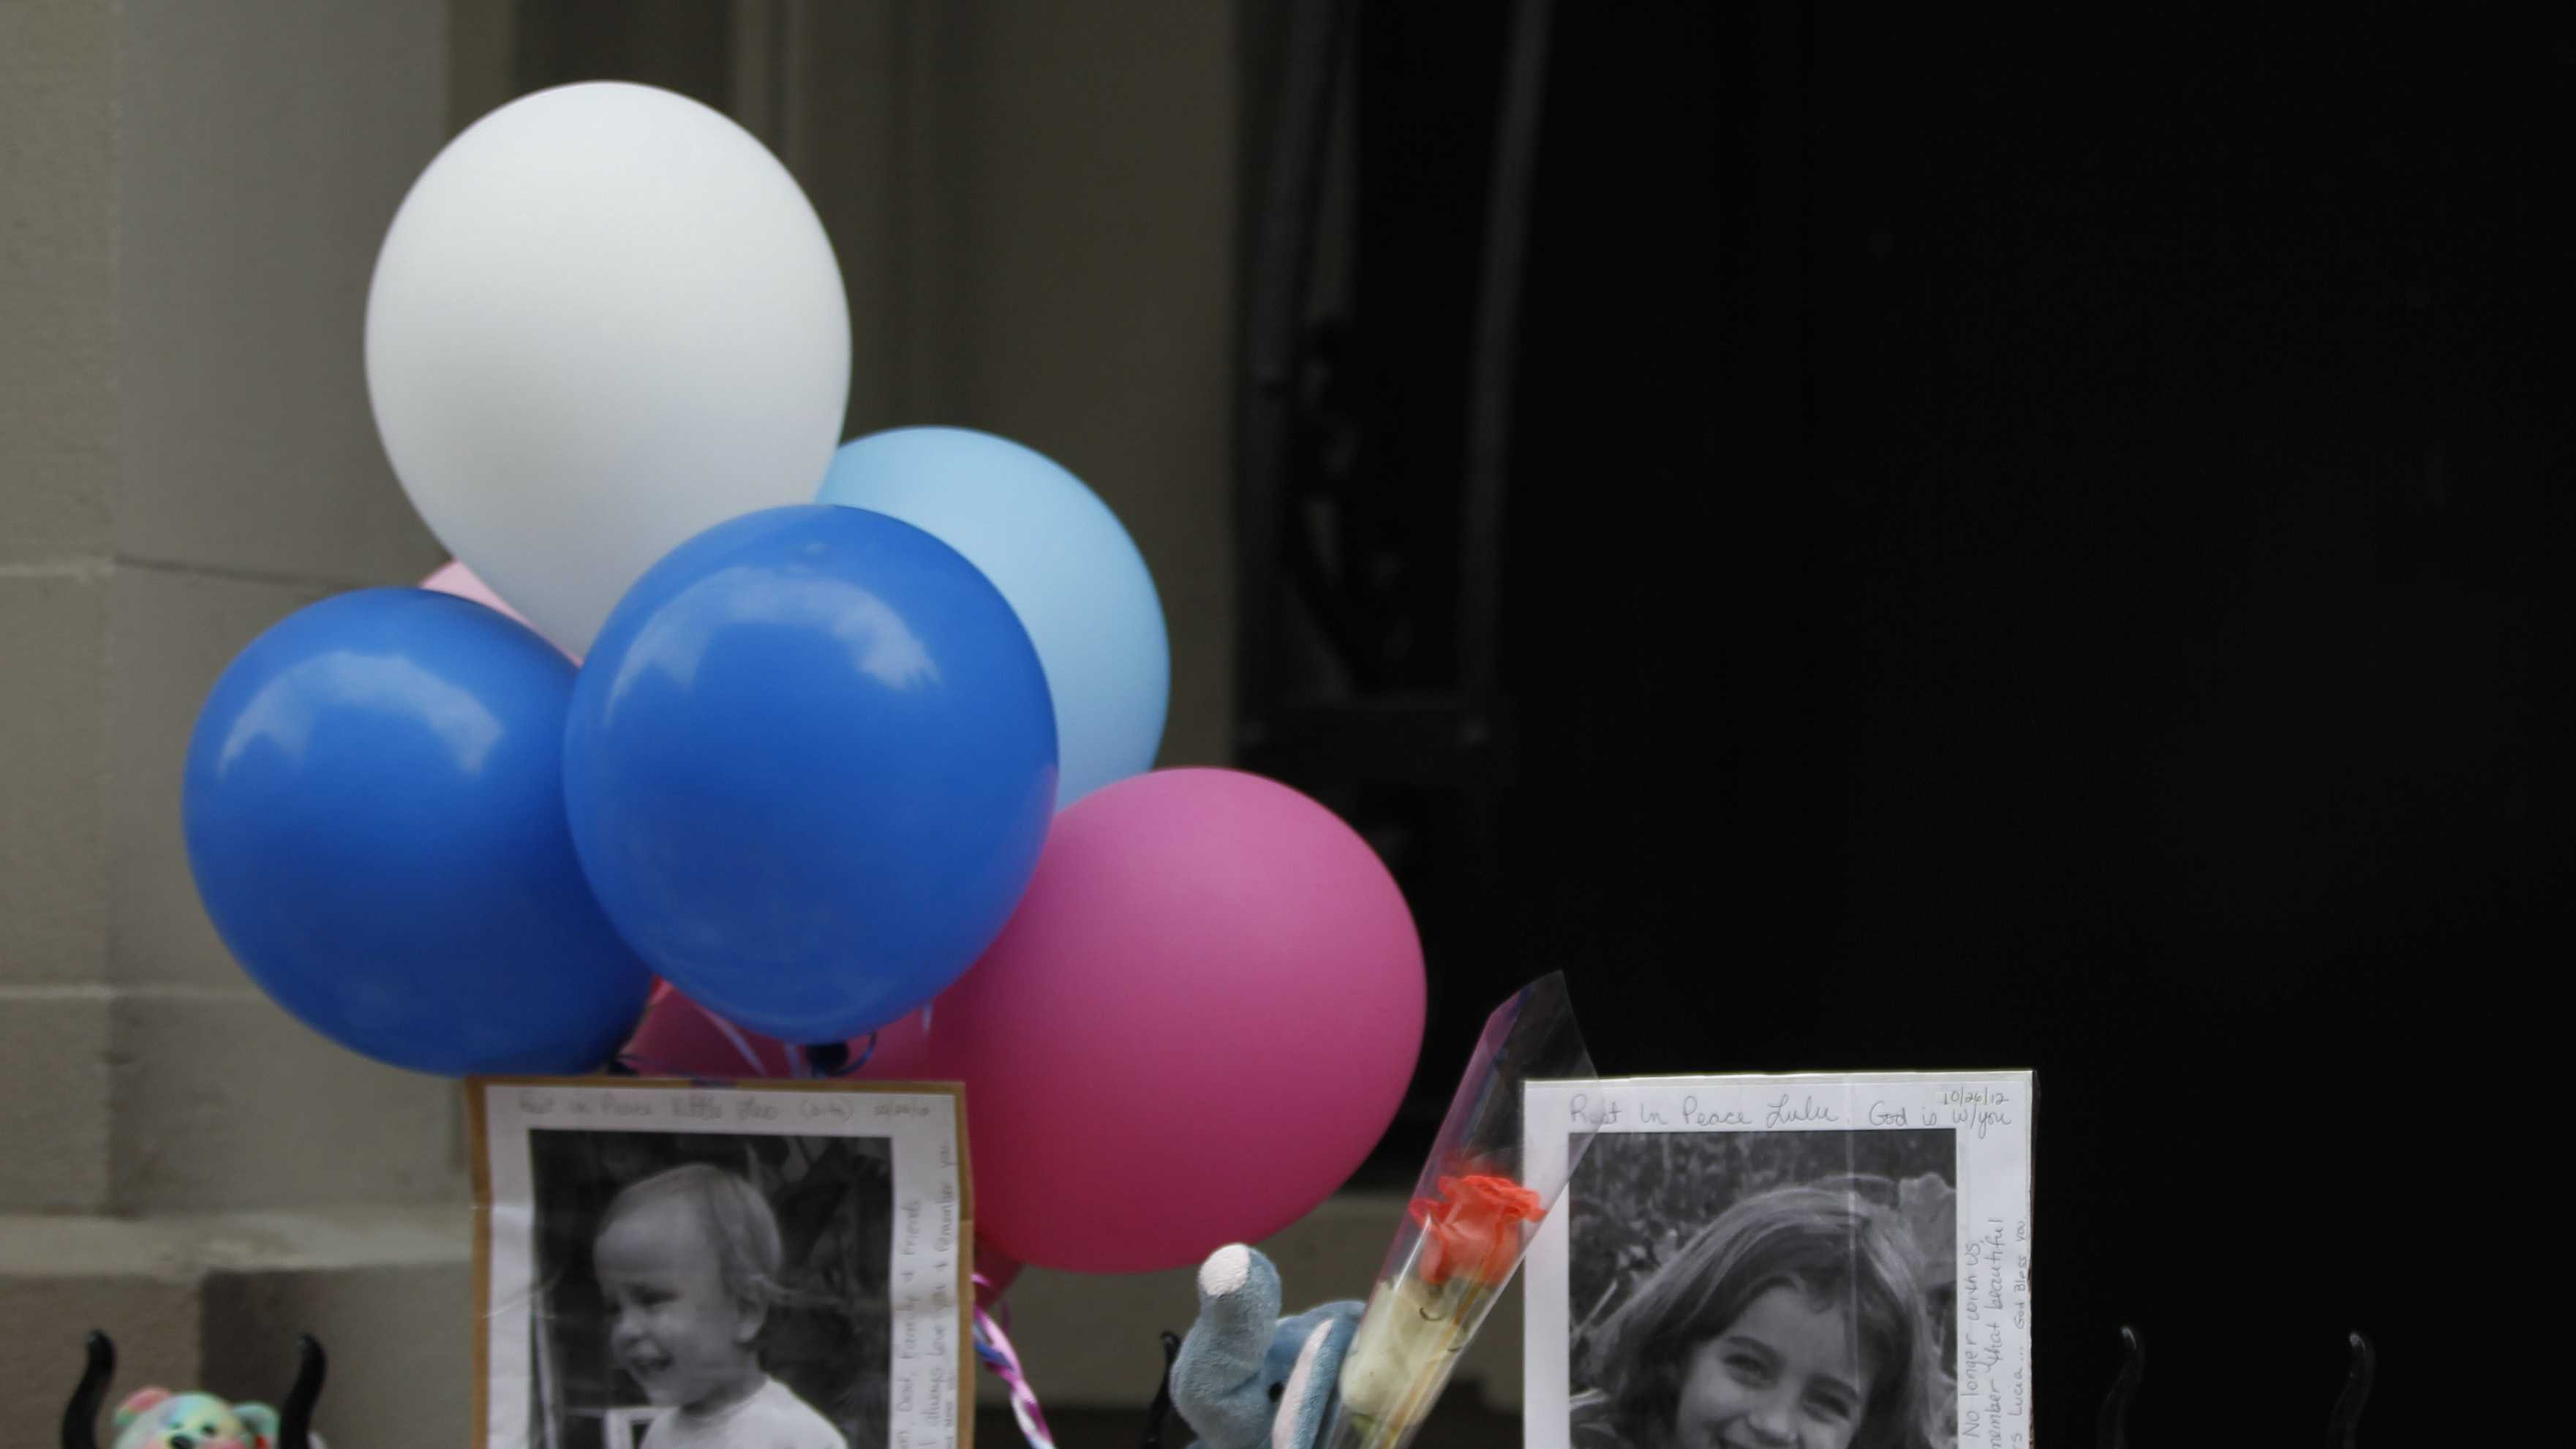 Photographs of the two children allegedly stabbed by their nanny are displayed alongside balloons and stuffed animals at memorial outside the apartment building were they lived.